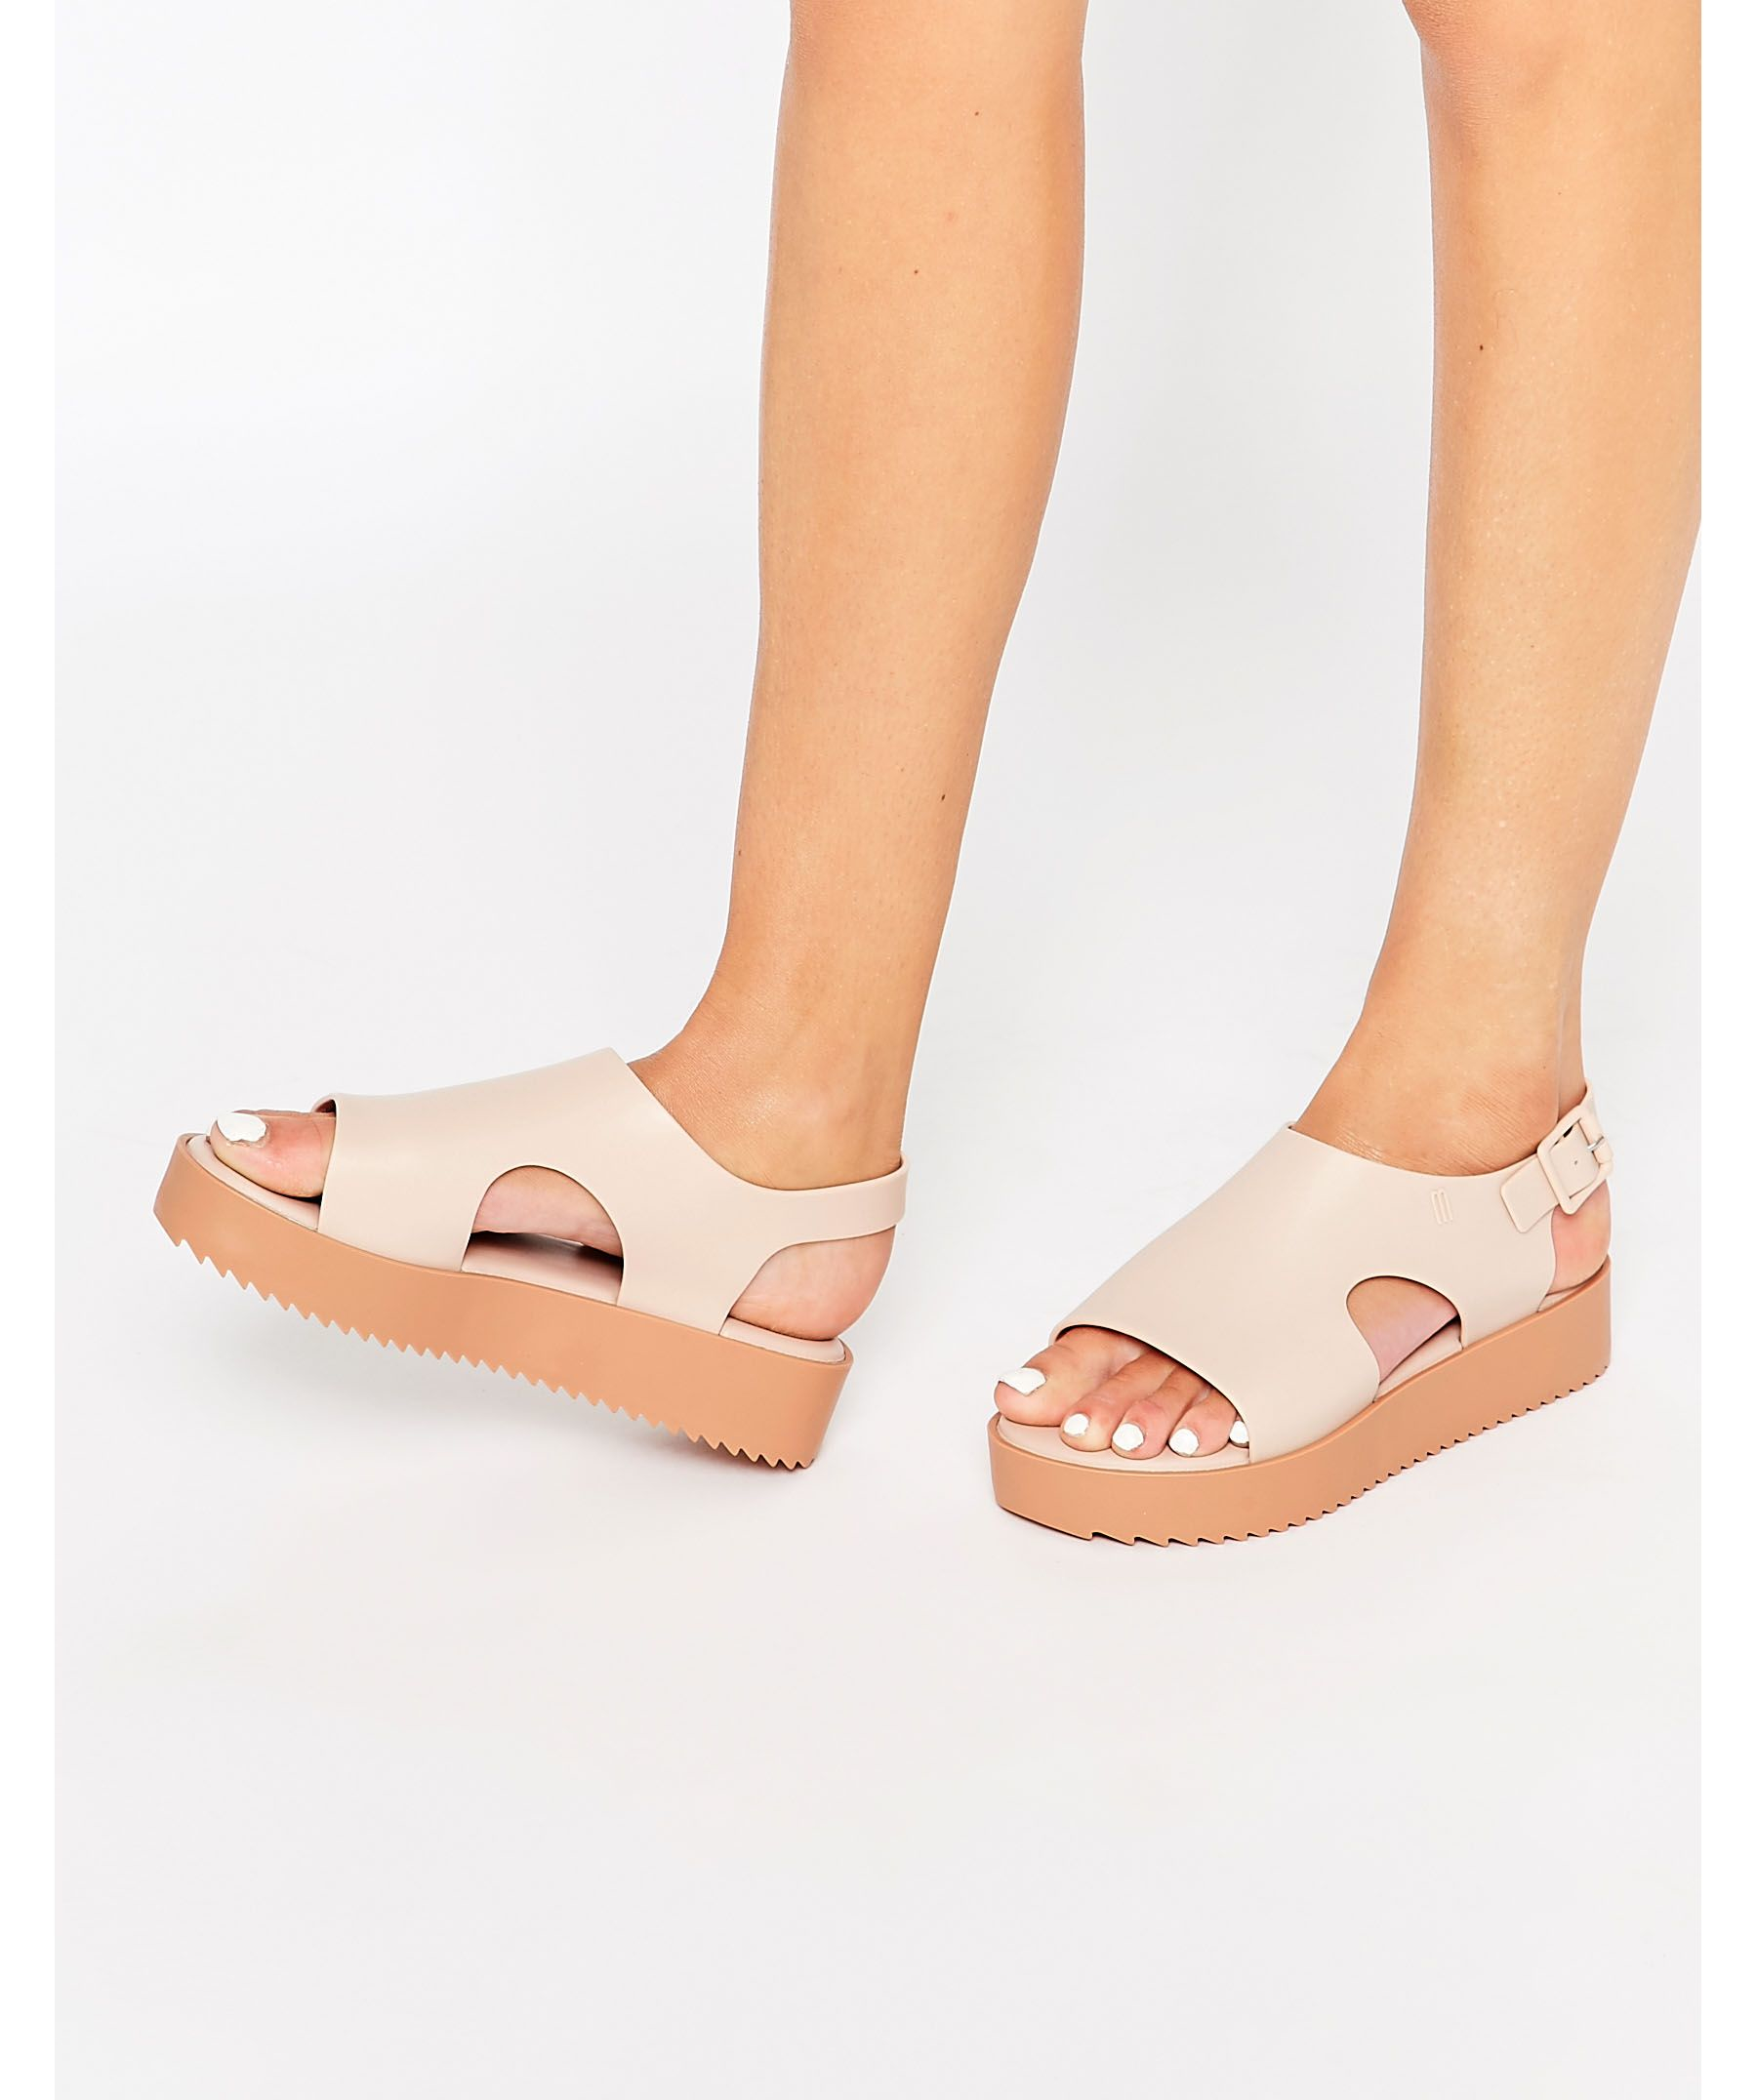 d65b27001768 Lyst - Melissa Nude Hotness Sandals in Pink